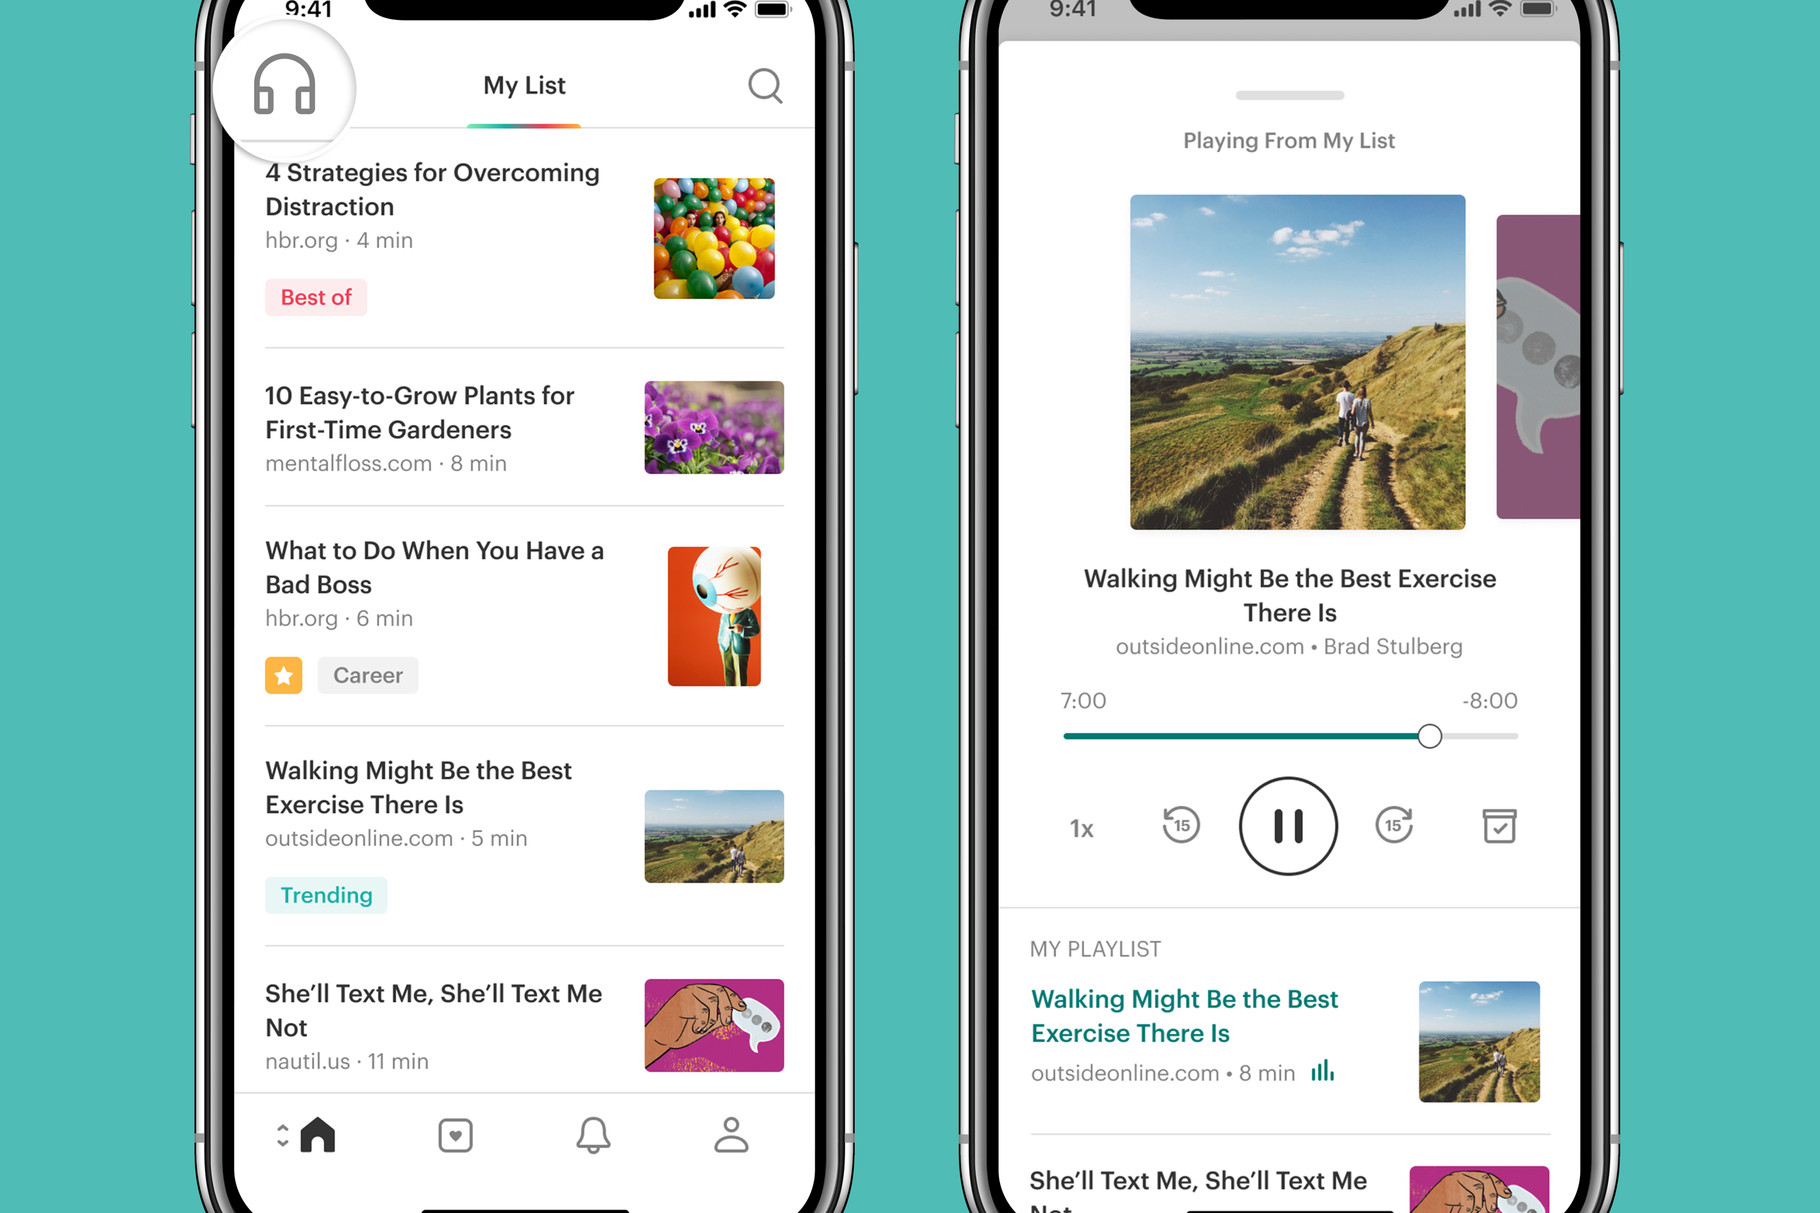 The Pocket app has a new design and updated feature to listen to text